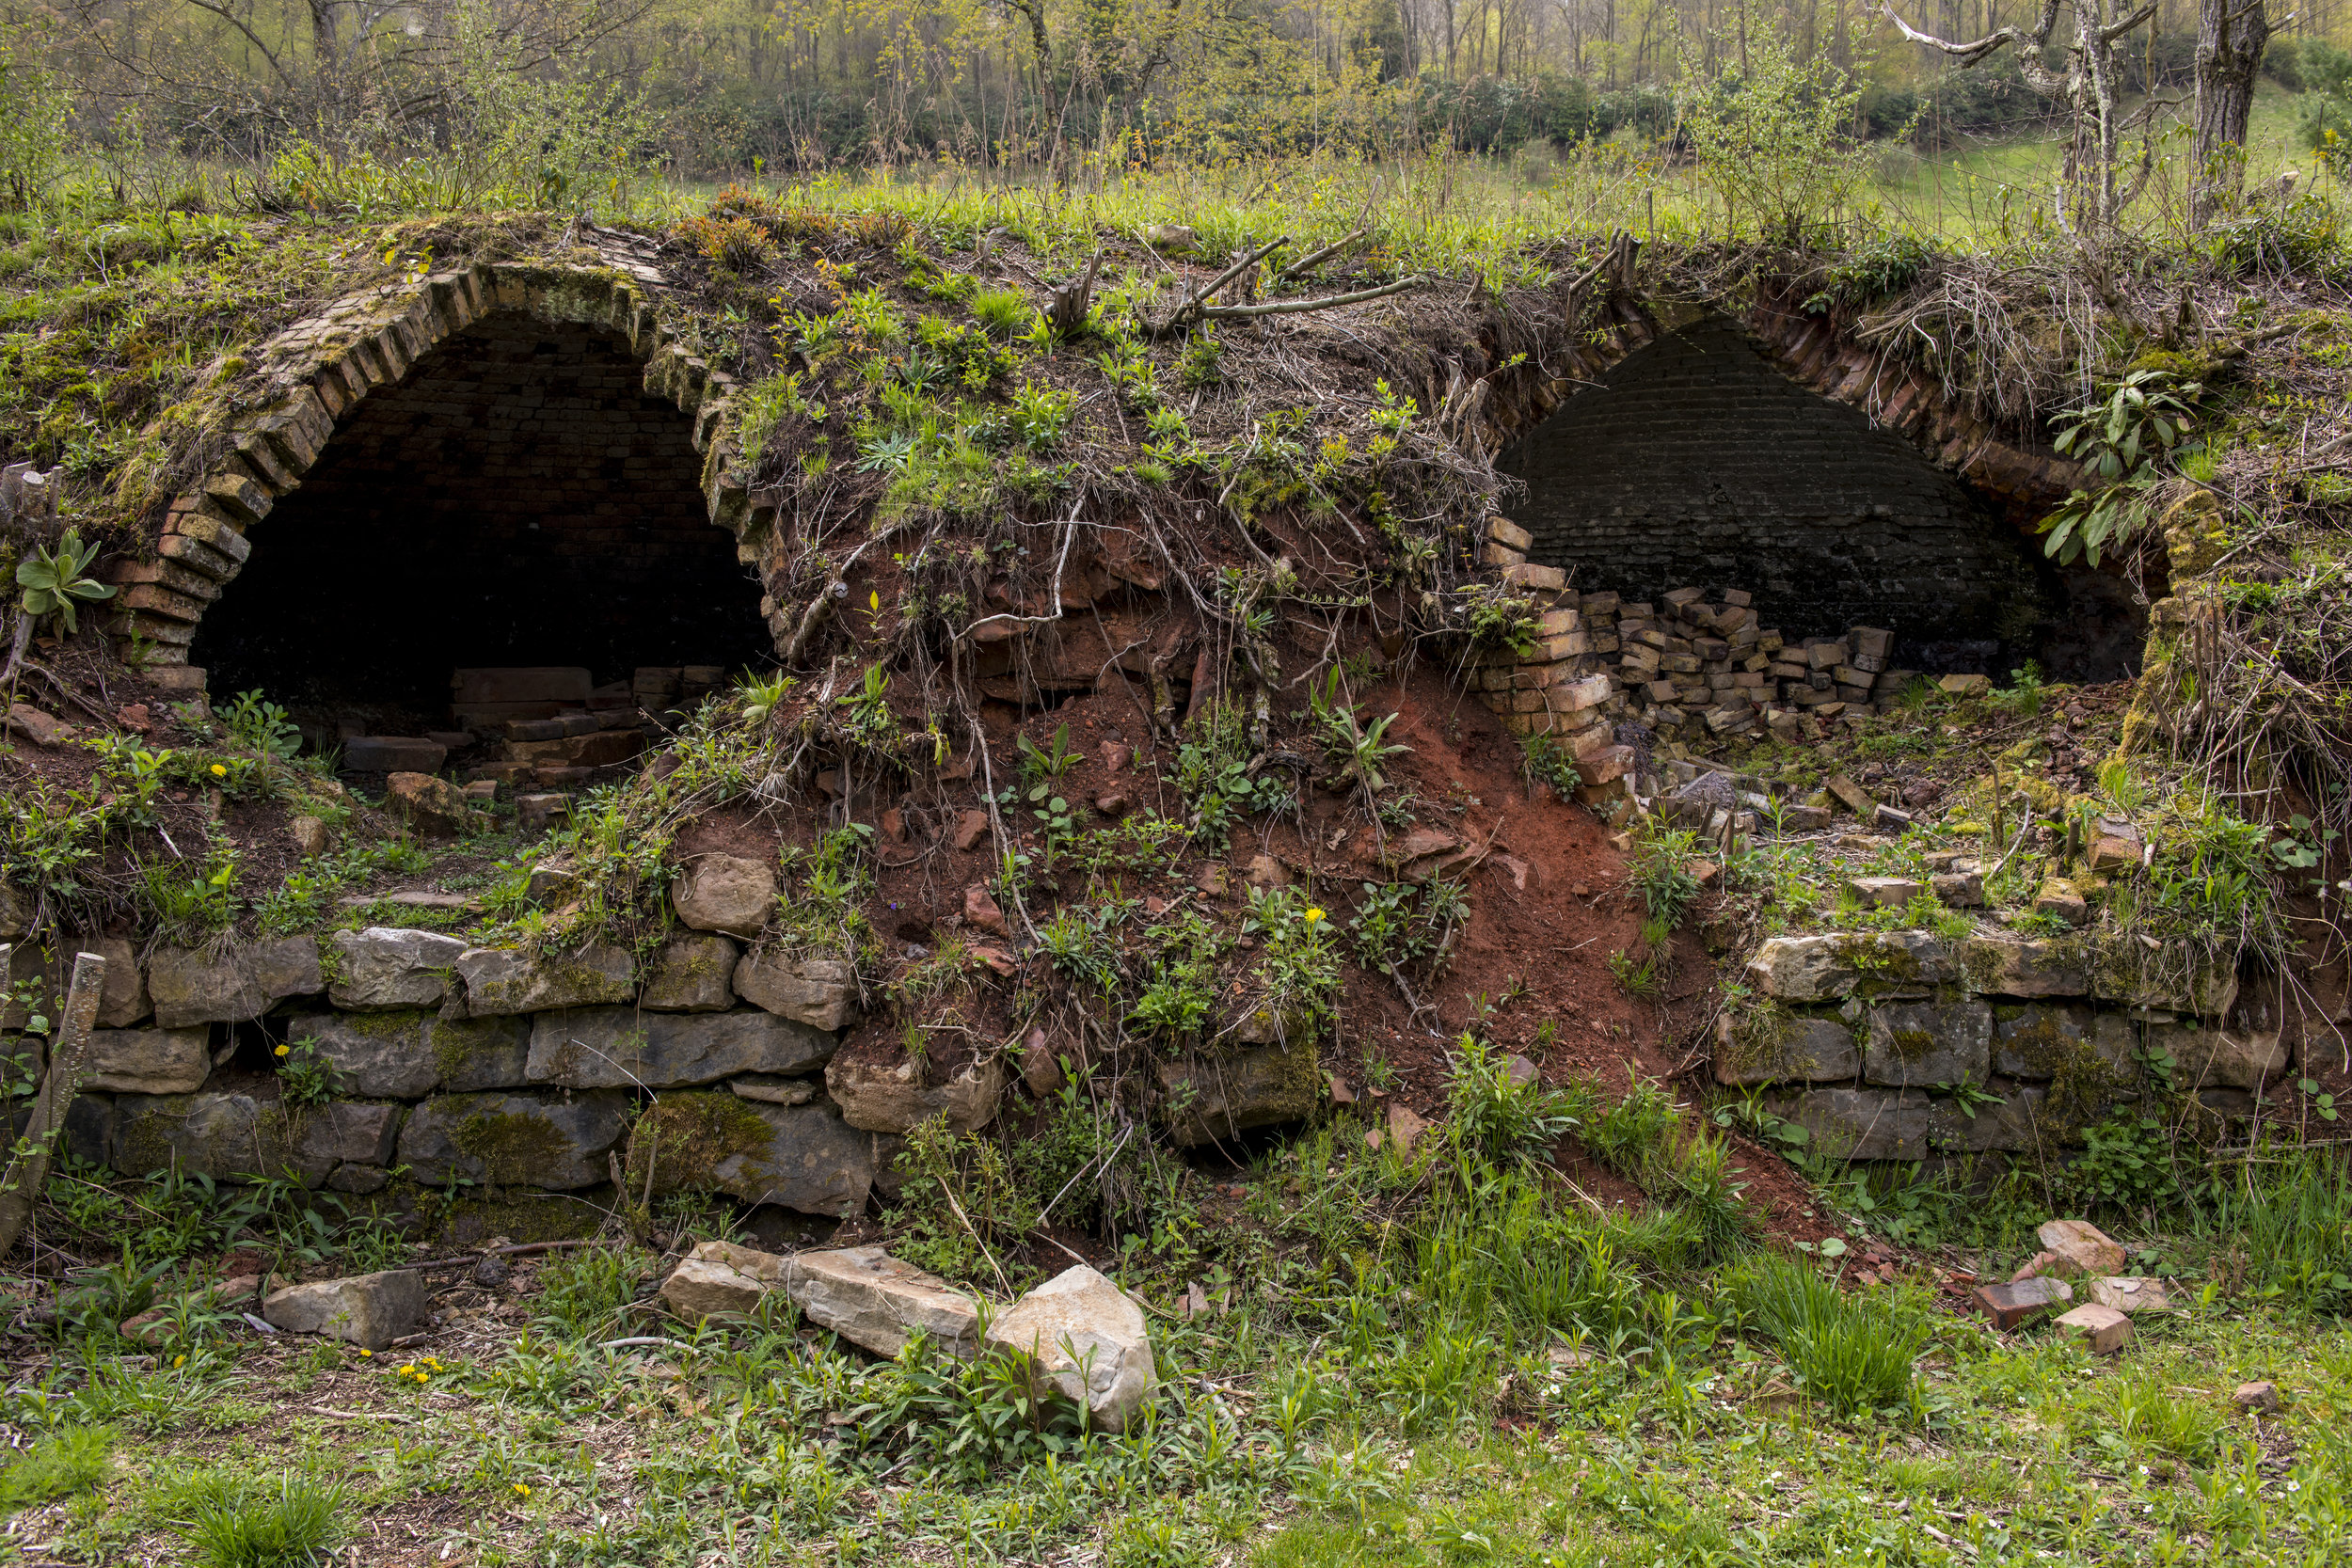 Old beehive coke ovens line the roadway leading to Douglas Falls. At one time, there were over 500 of these ovens polluting the surrounding habitats.